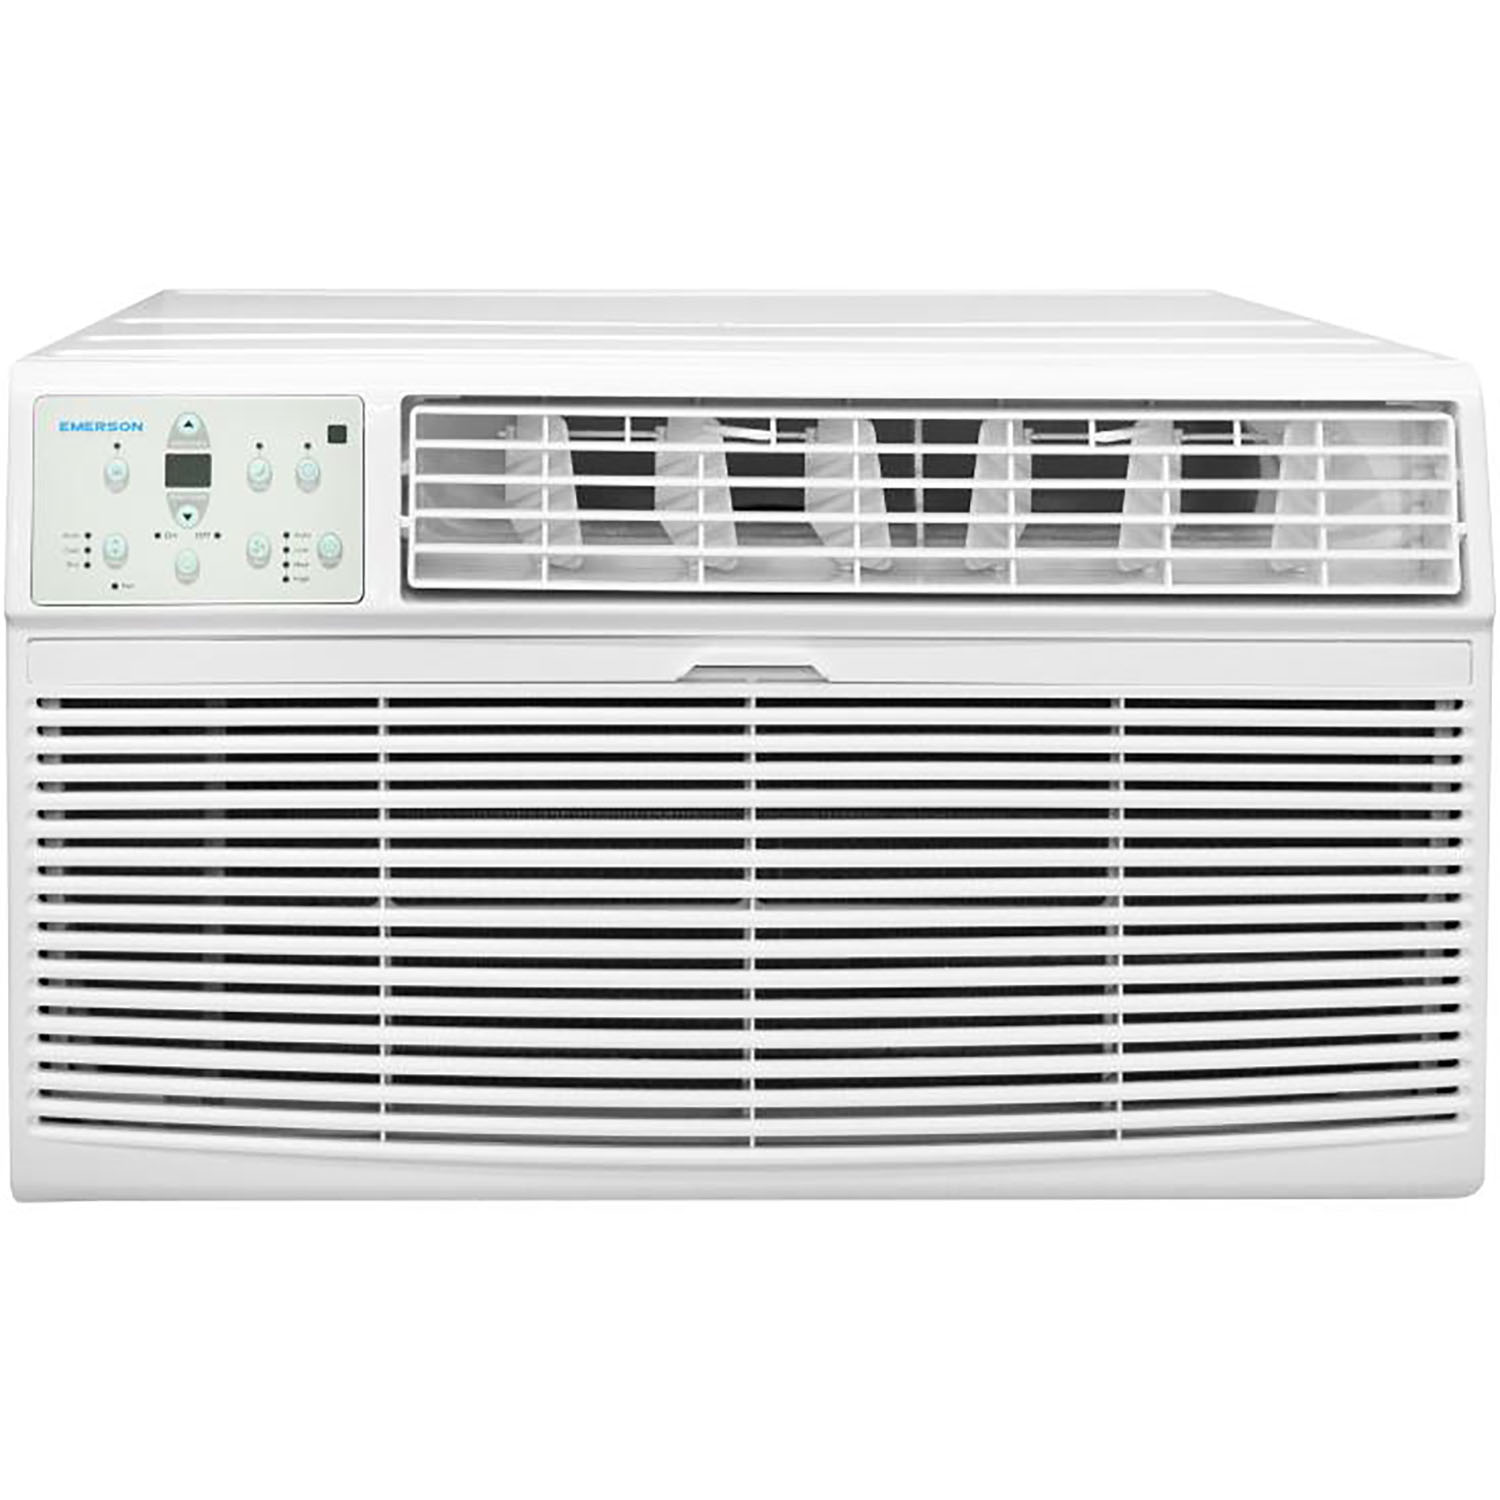 Emerson Quiet Kool Energy Star 12K BTU 115V Through-the-Wall Air Conditioner with Remote Control